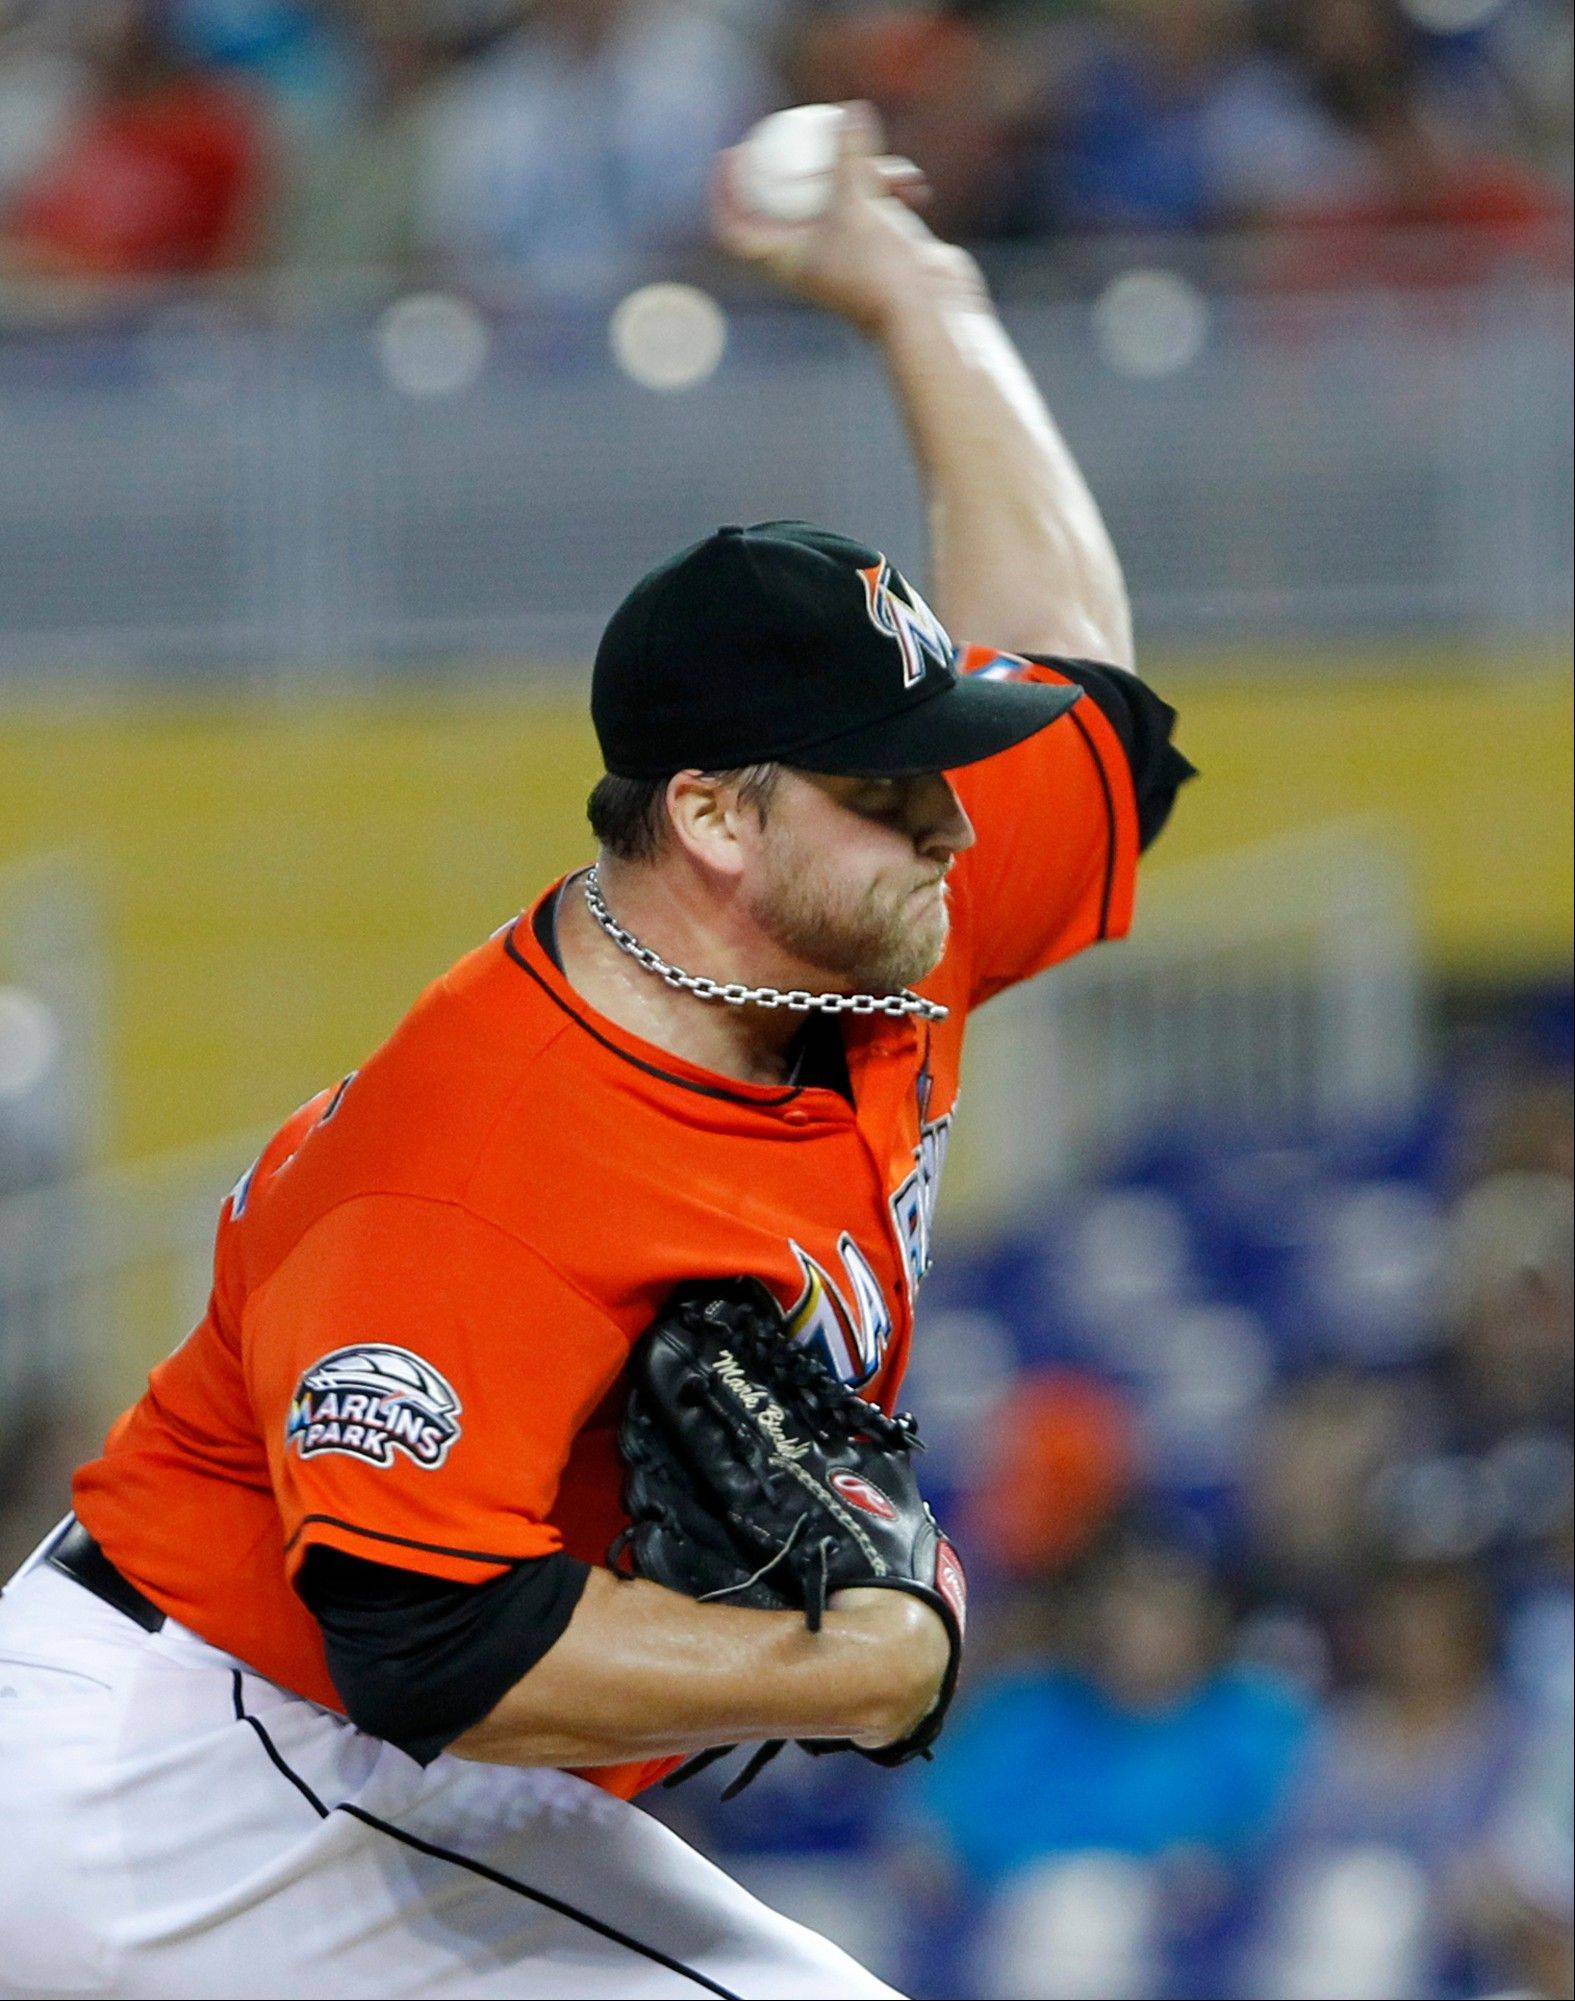 Miami Marlins pitcher Mark Buehrle delivers Wednesday during the third inning against the Philadelphia Phillies in Miami. Buehrle (10-11) achieved the 10-win milestone on his sixth try, extending his streak reaching double digits in victories to 12 consecutive years. The left-hander allowed two runs in seven innings as the Marlins won 9-2.